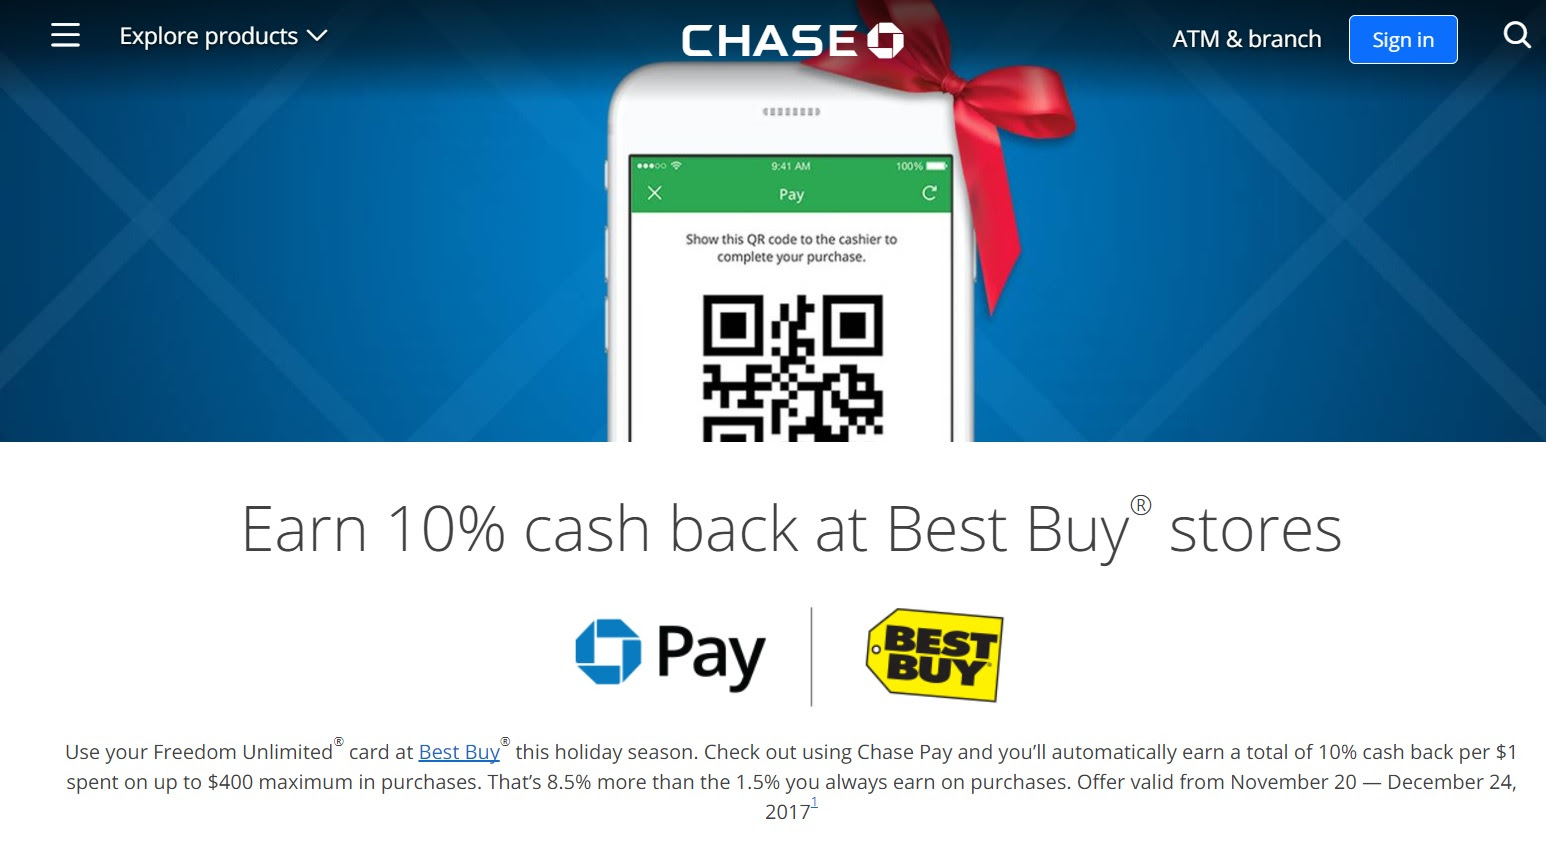 Get 10% back at best buy, up to $30 max cashback. Chase Freedom